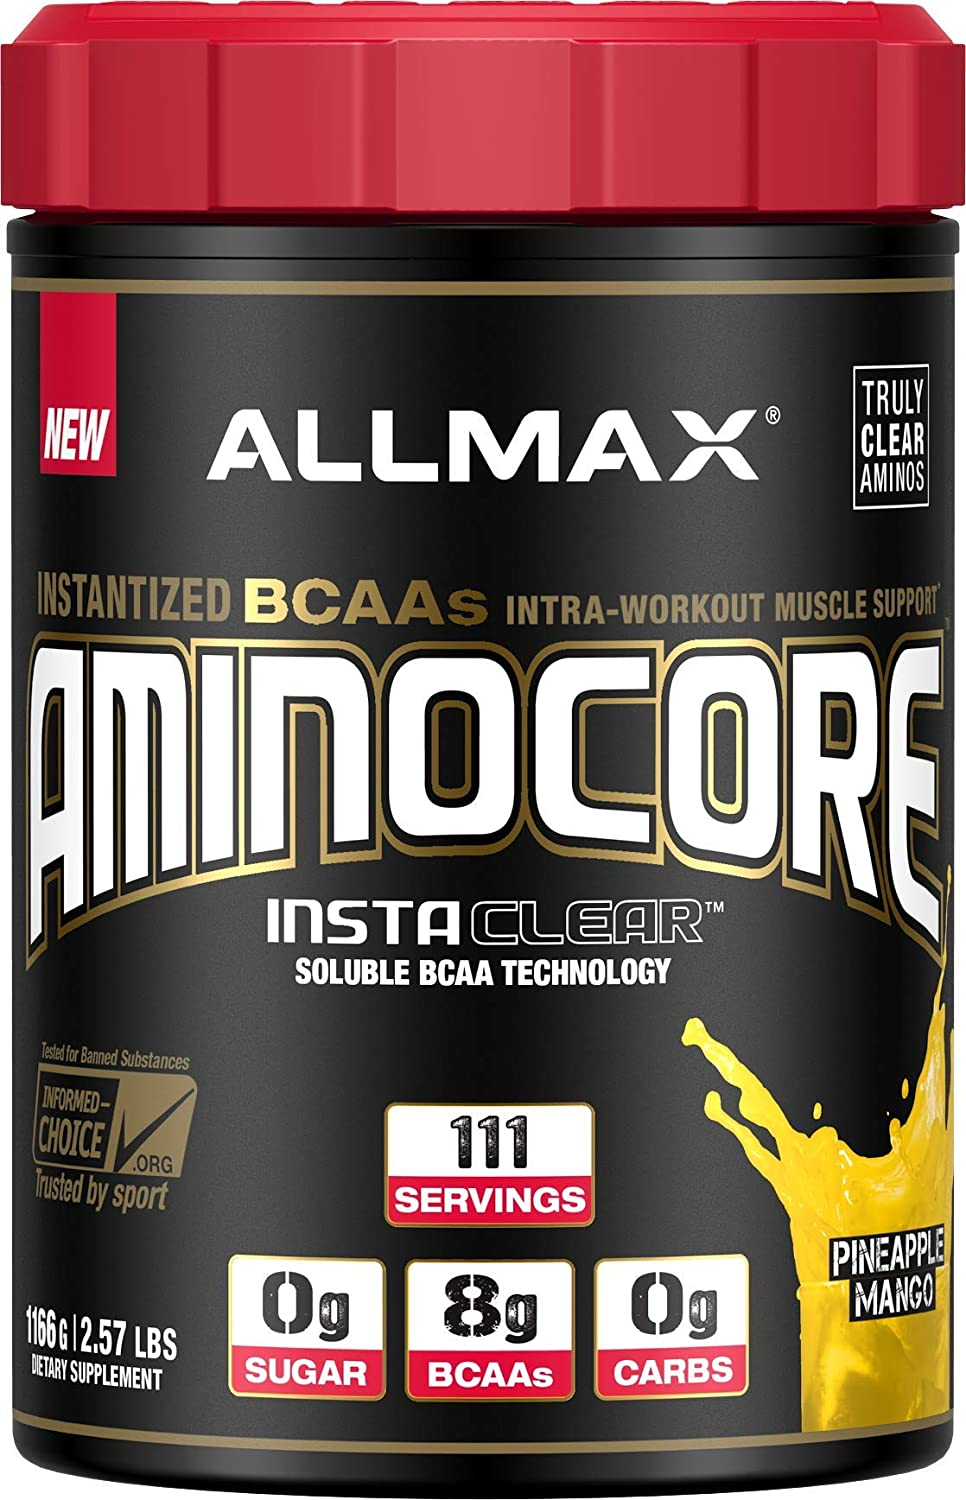 ALLMAX Nutrition Aminocore BCAAs, 100 Pure 45 30 25 Ratio, Pineapple Mango, 1166g